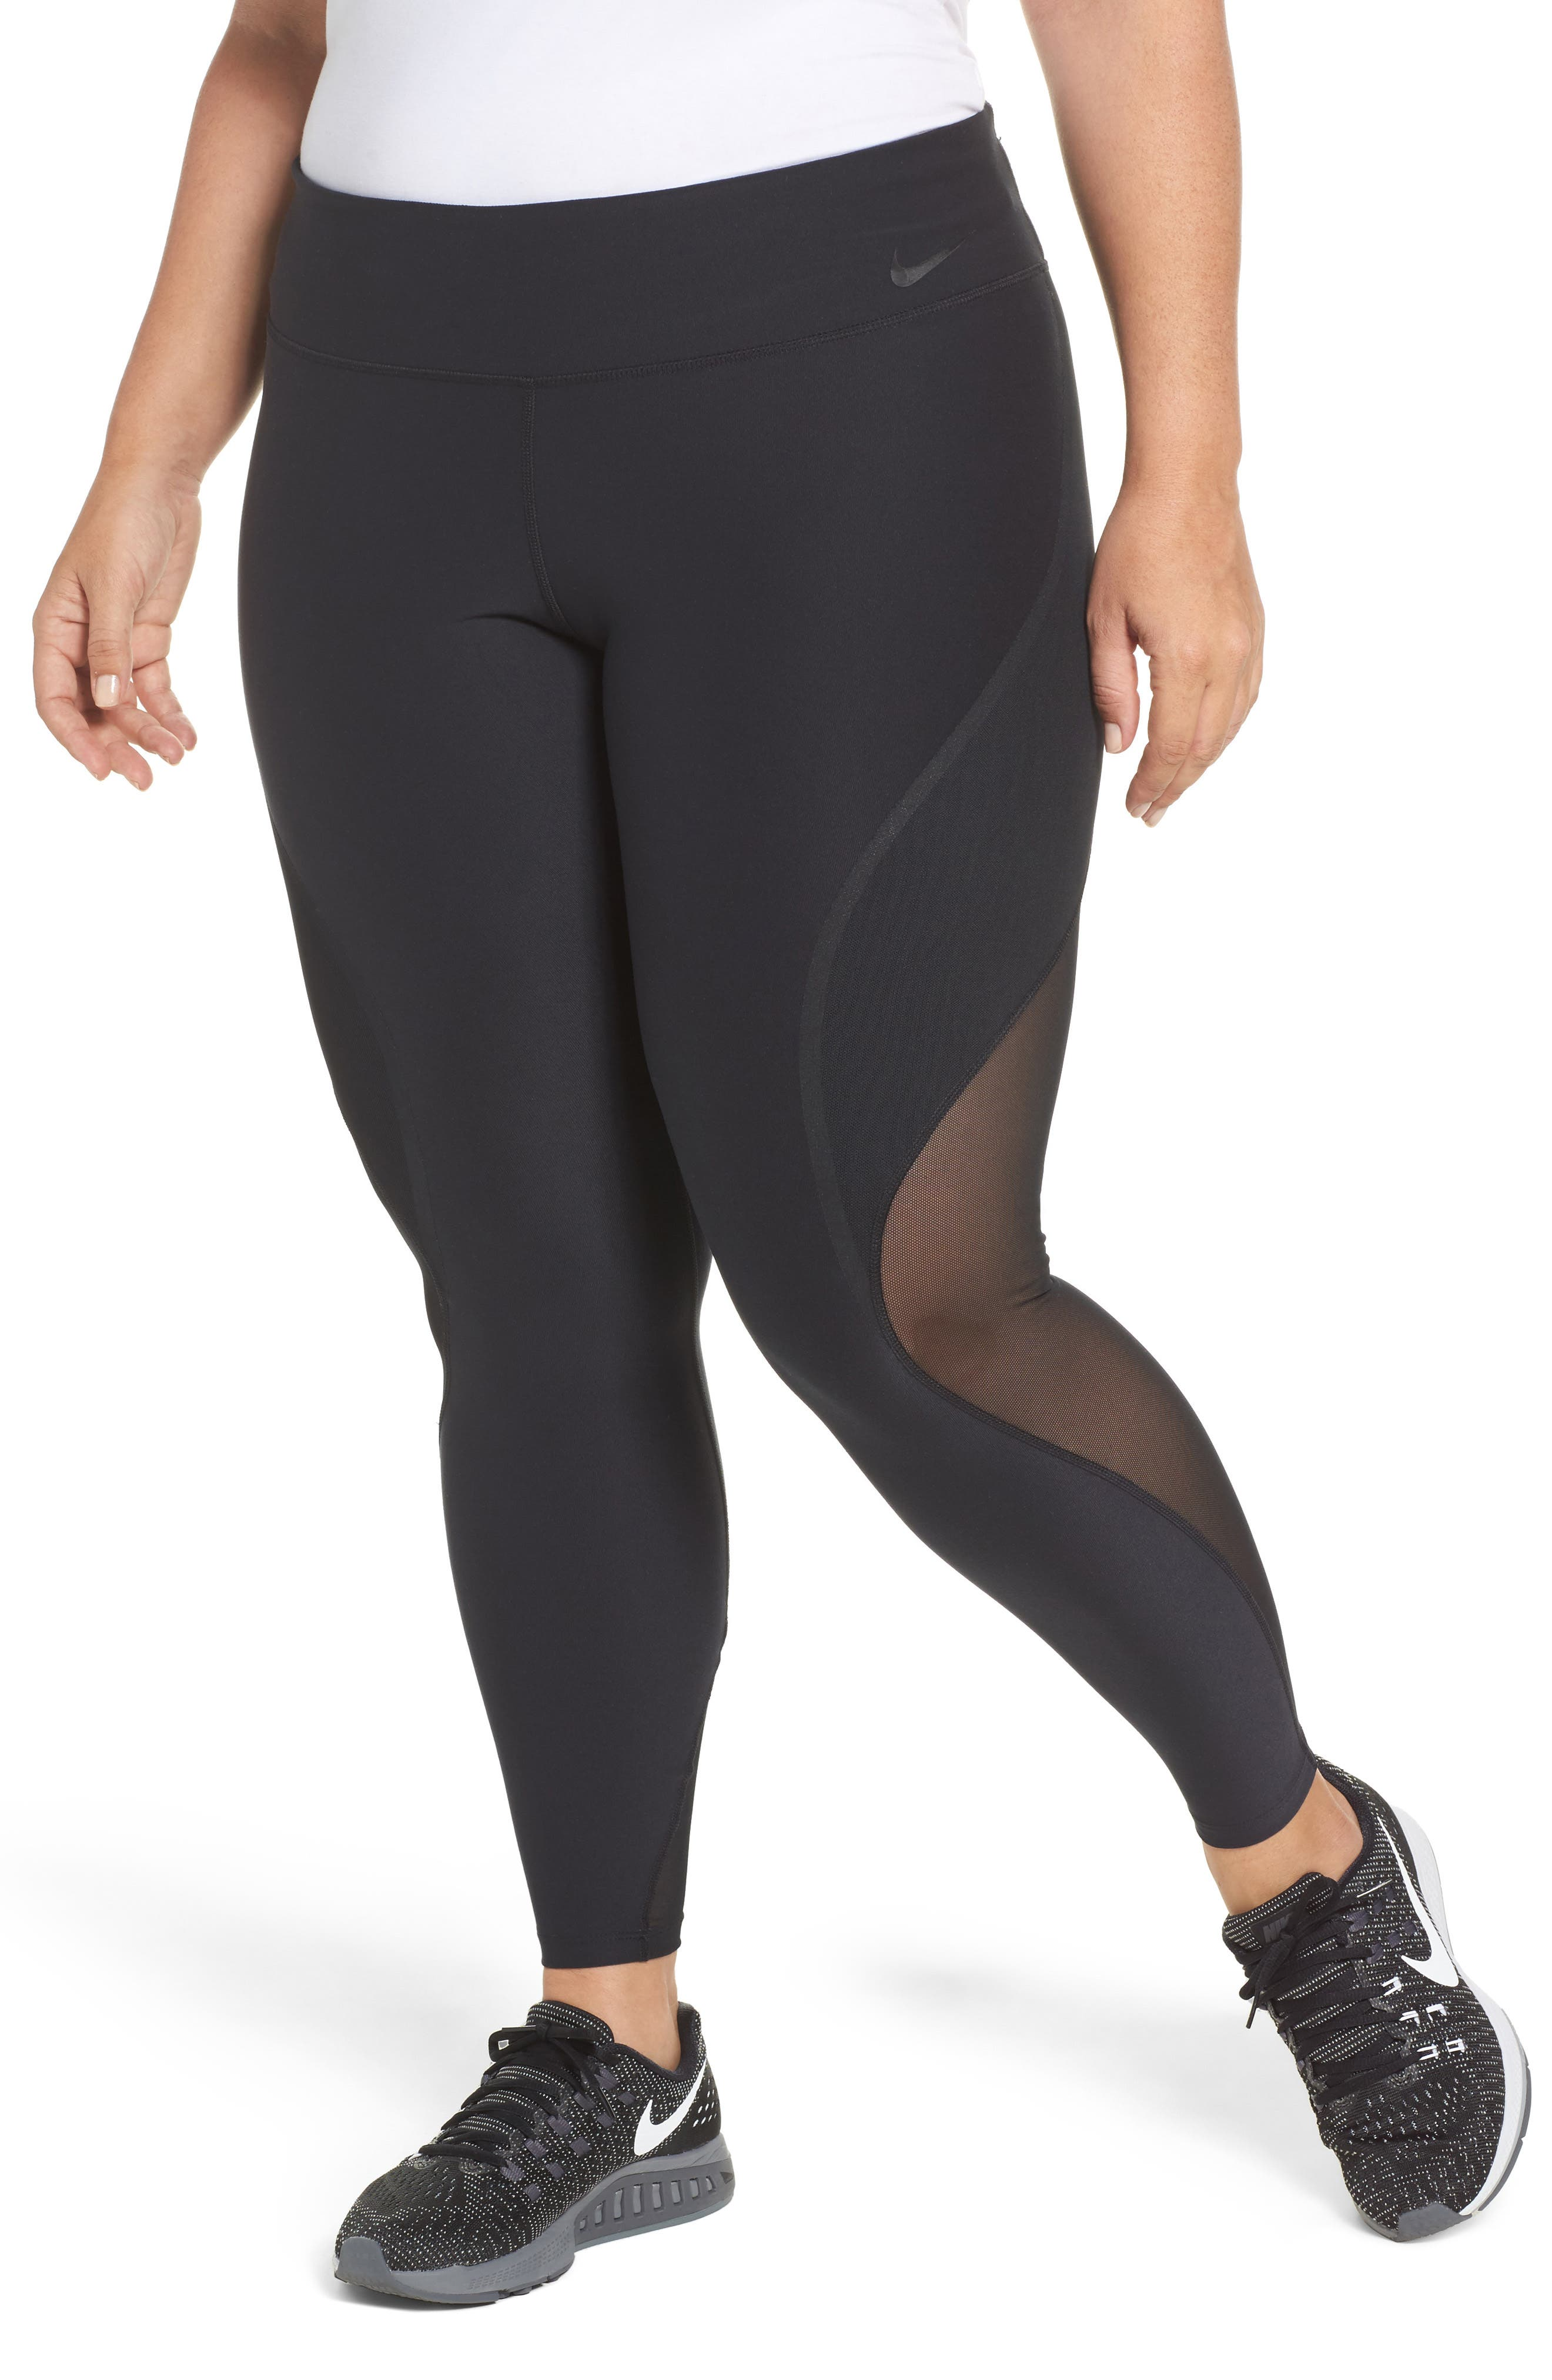 Power Legendary Training Tights,                         Main,                         color, Black/ Black/ White